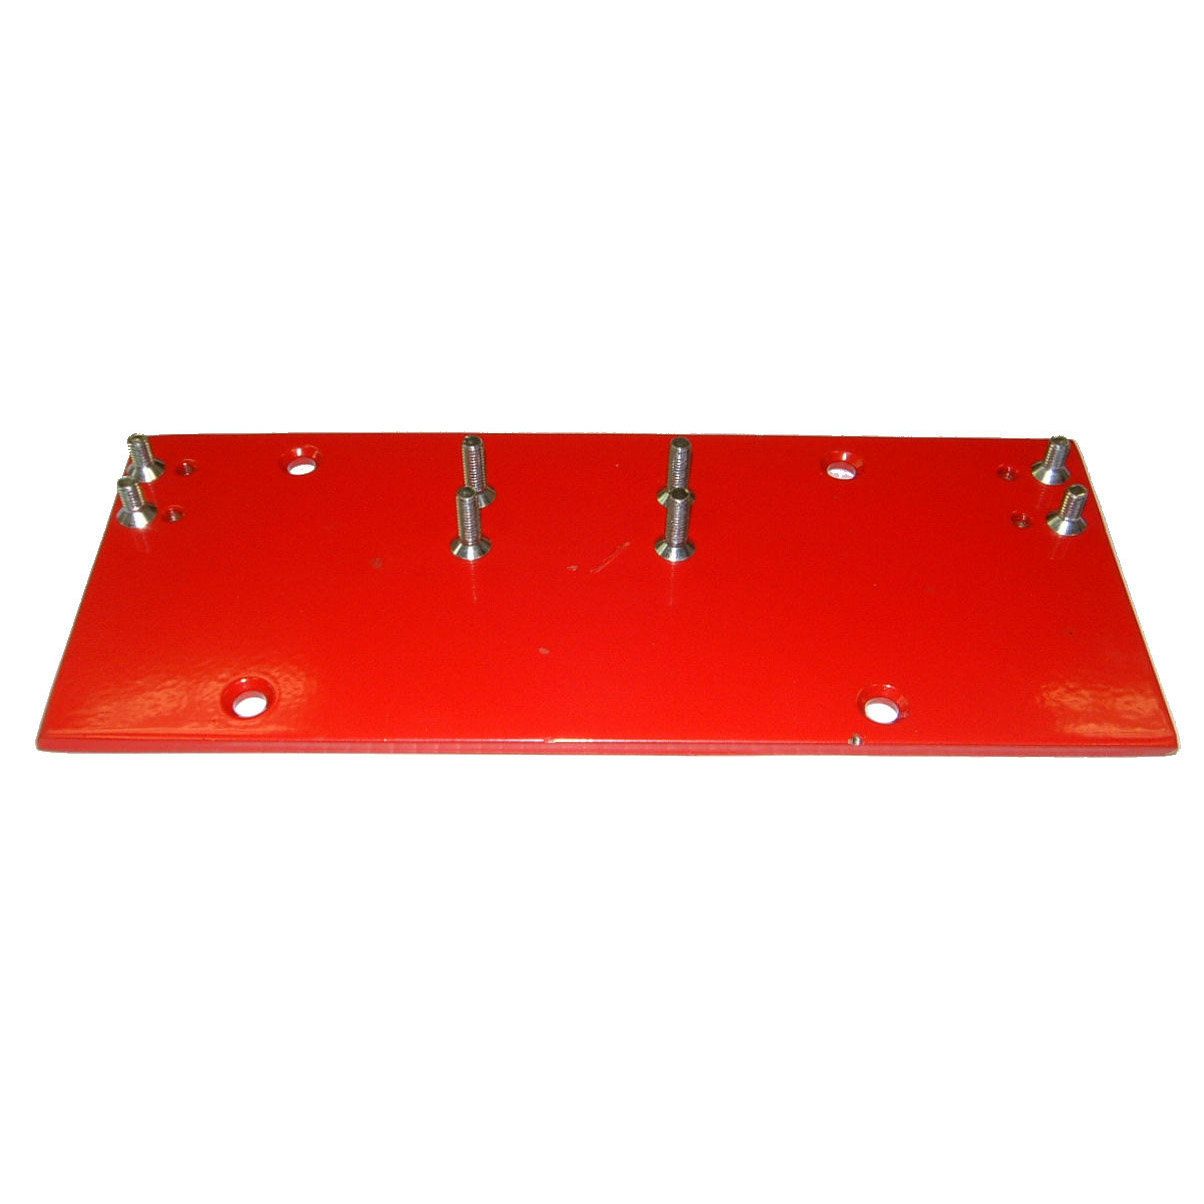 K6 DOOR CLOSER ADAPTOR PLATE